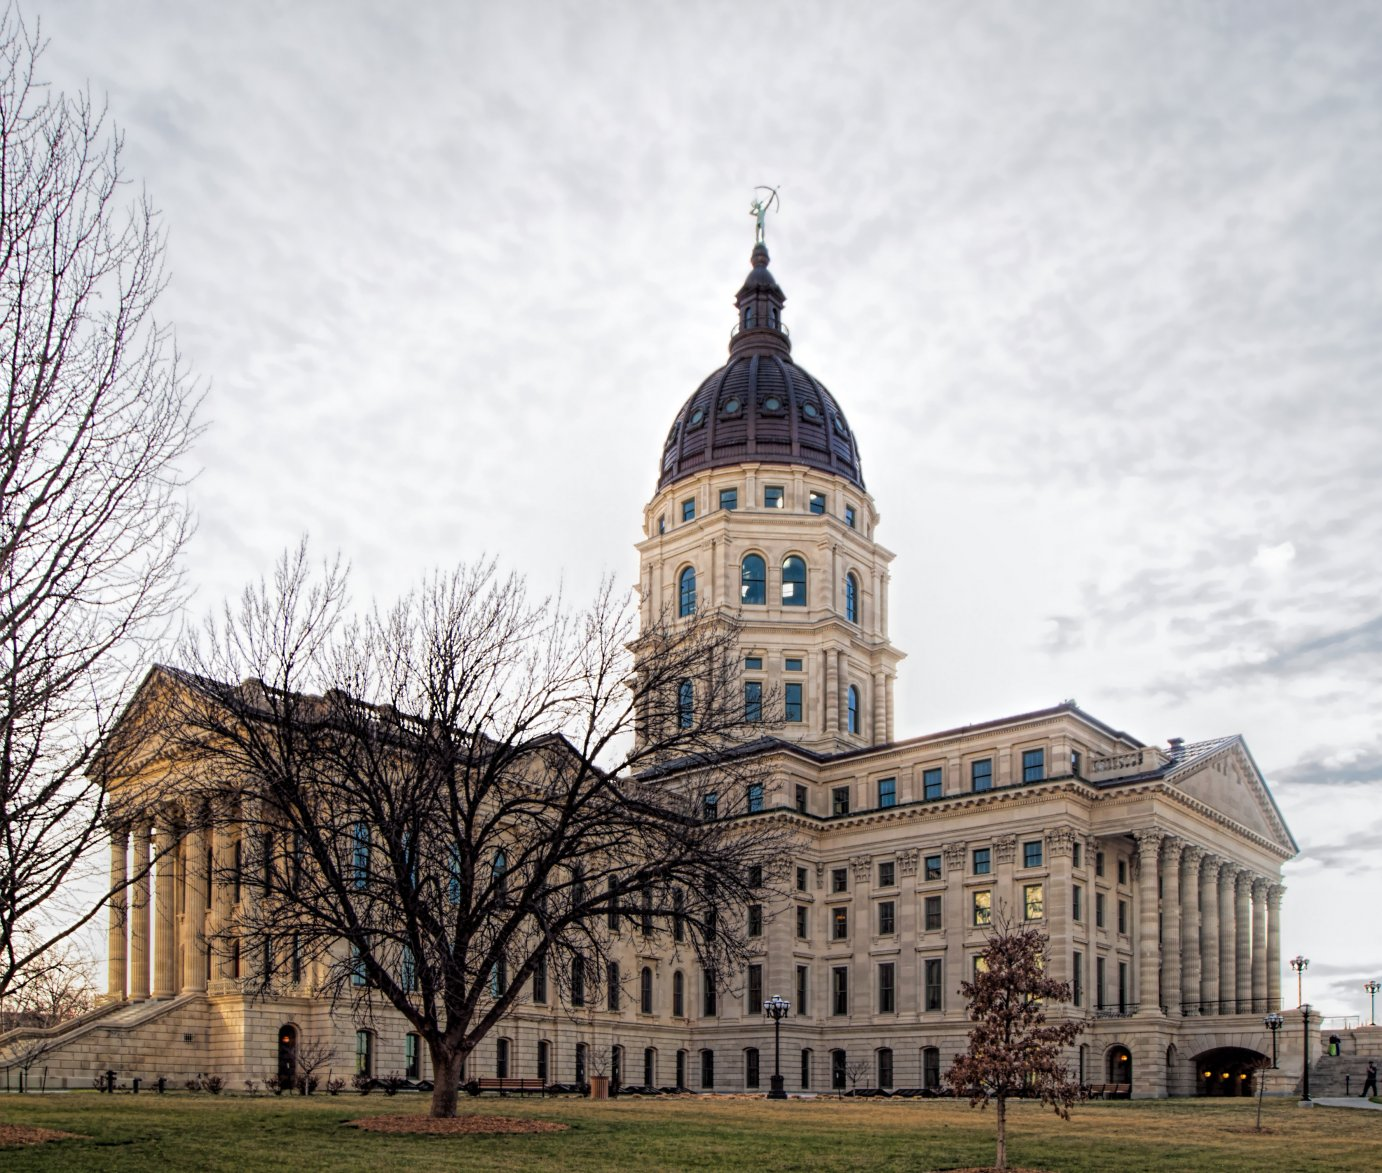 Kansas State Capitol Building (Photo by Dan Skinner)